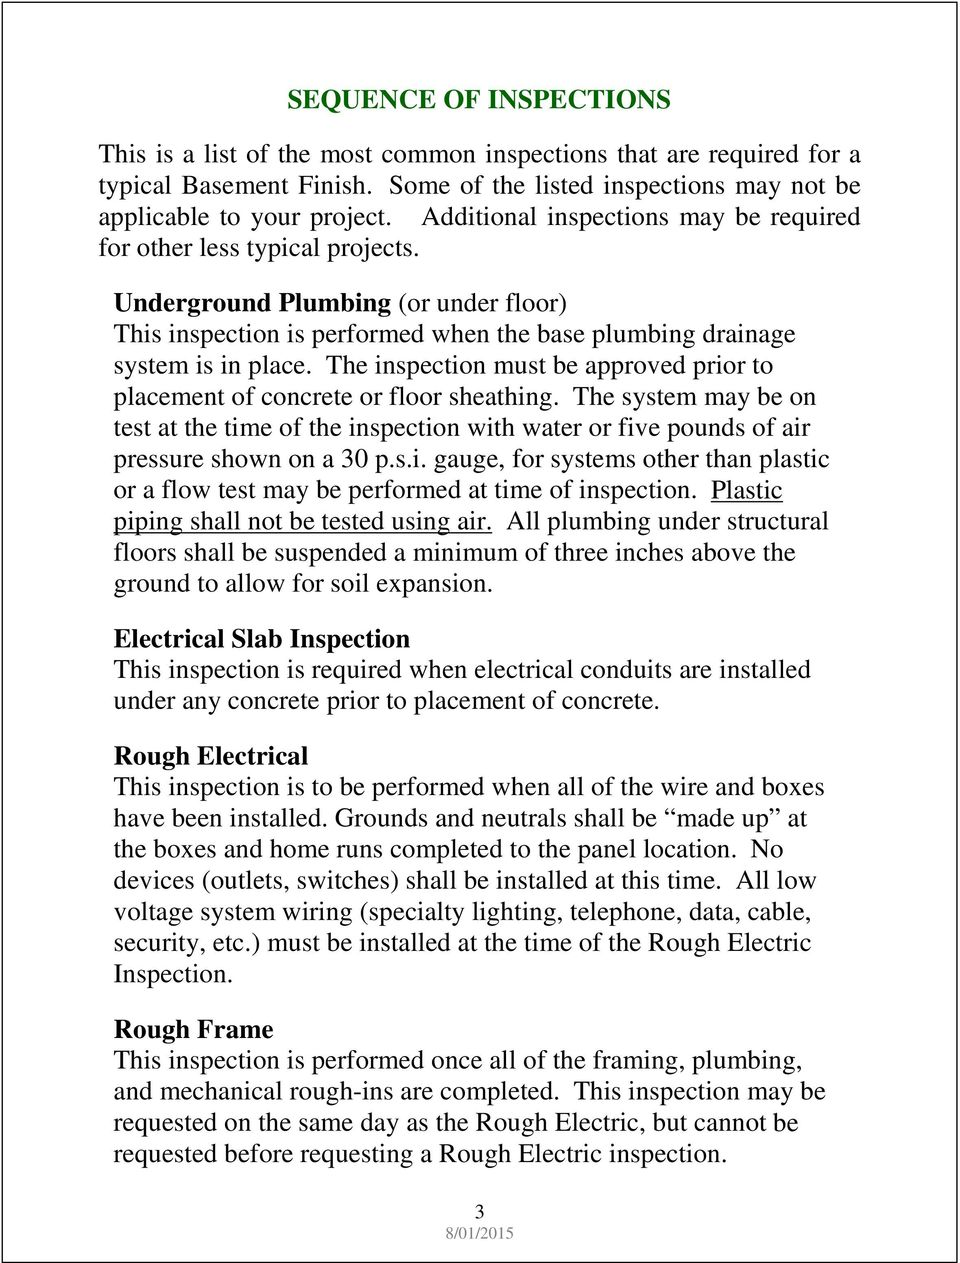 Finished Basement Requirement Guide Pdf Wiring Circuits The Inspection Must Be Approved Prior To Placement Of Concrete Or Floor Sheathing System